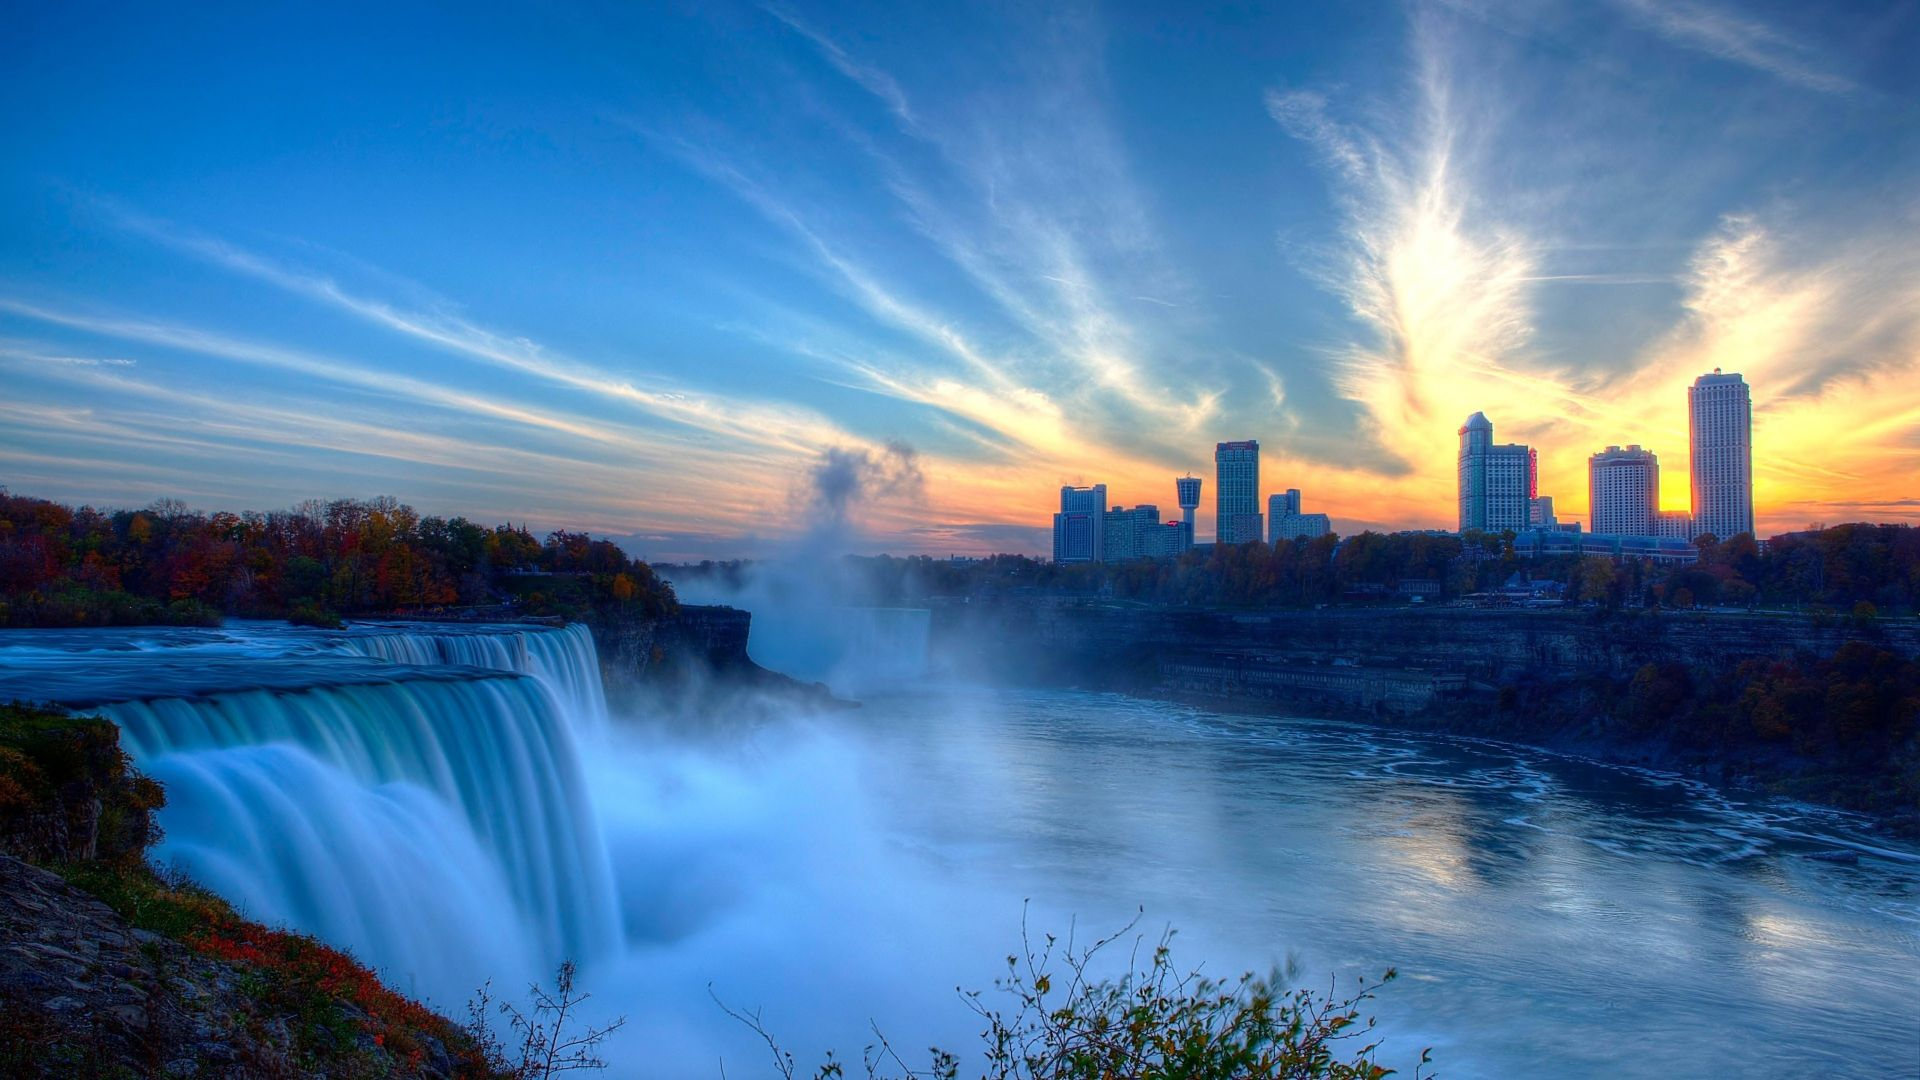 Niagara Falls, waterfall, New York, USA, 4k (horizontal)